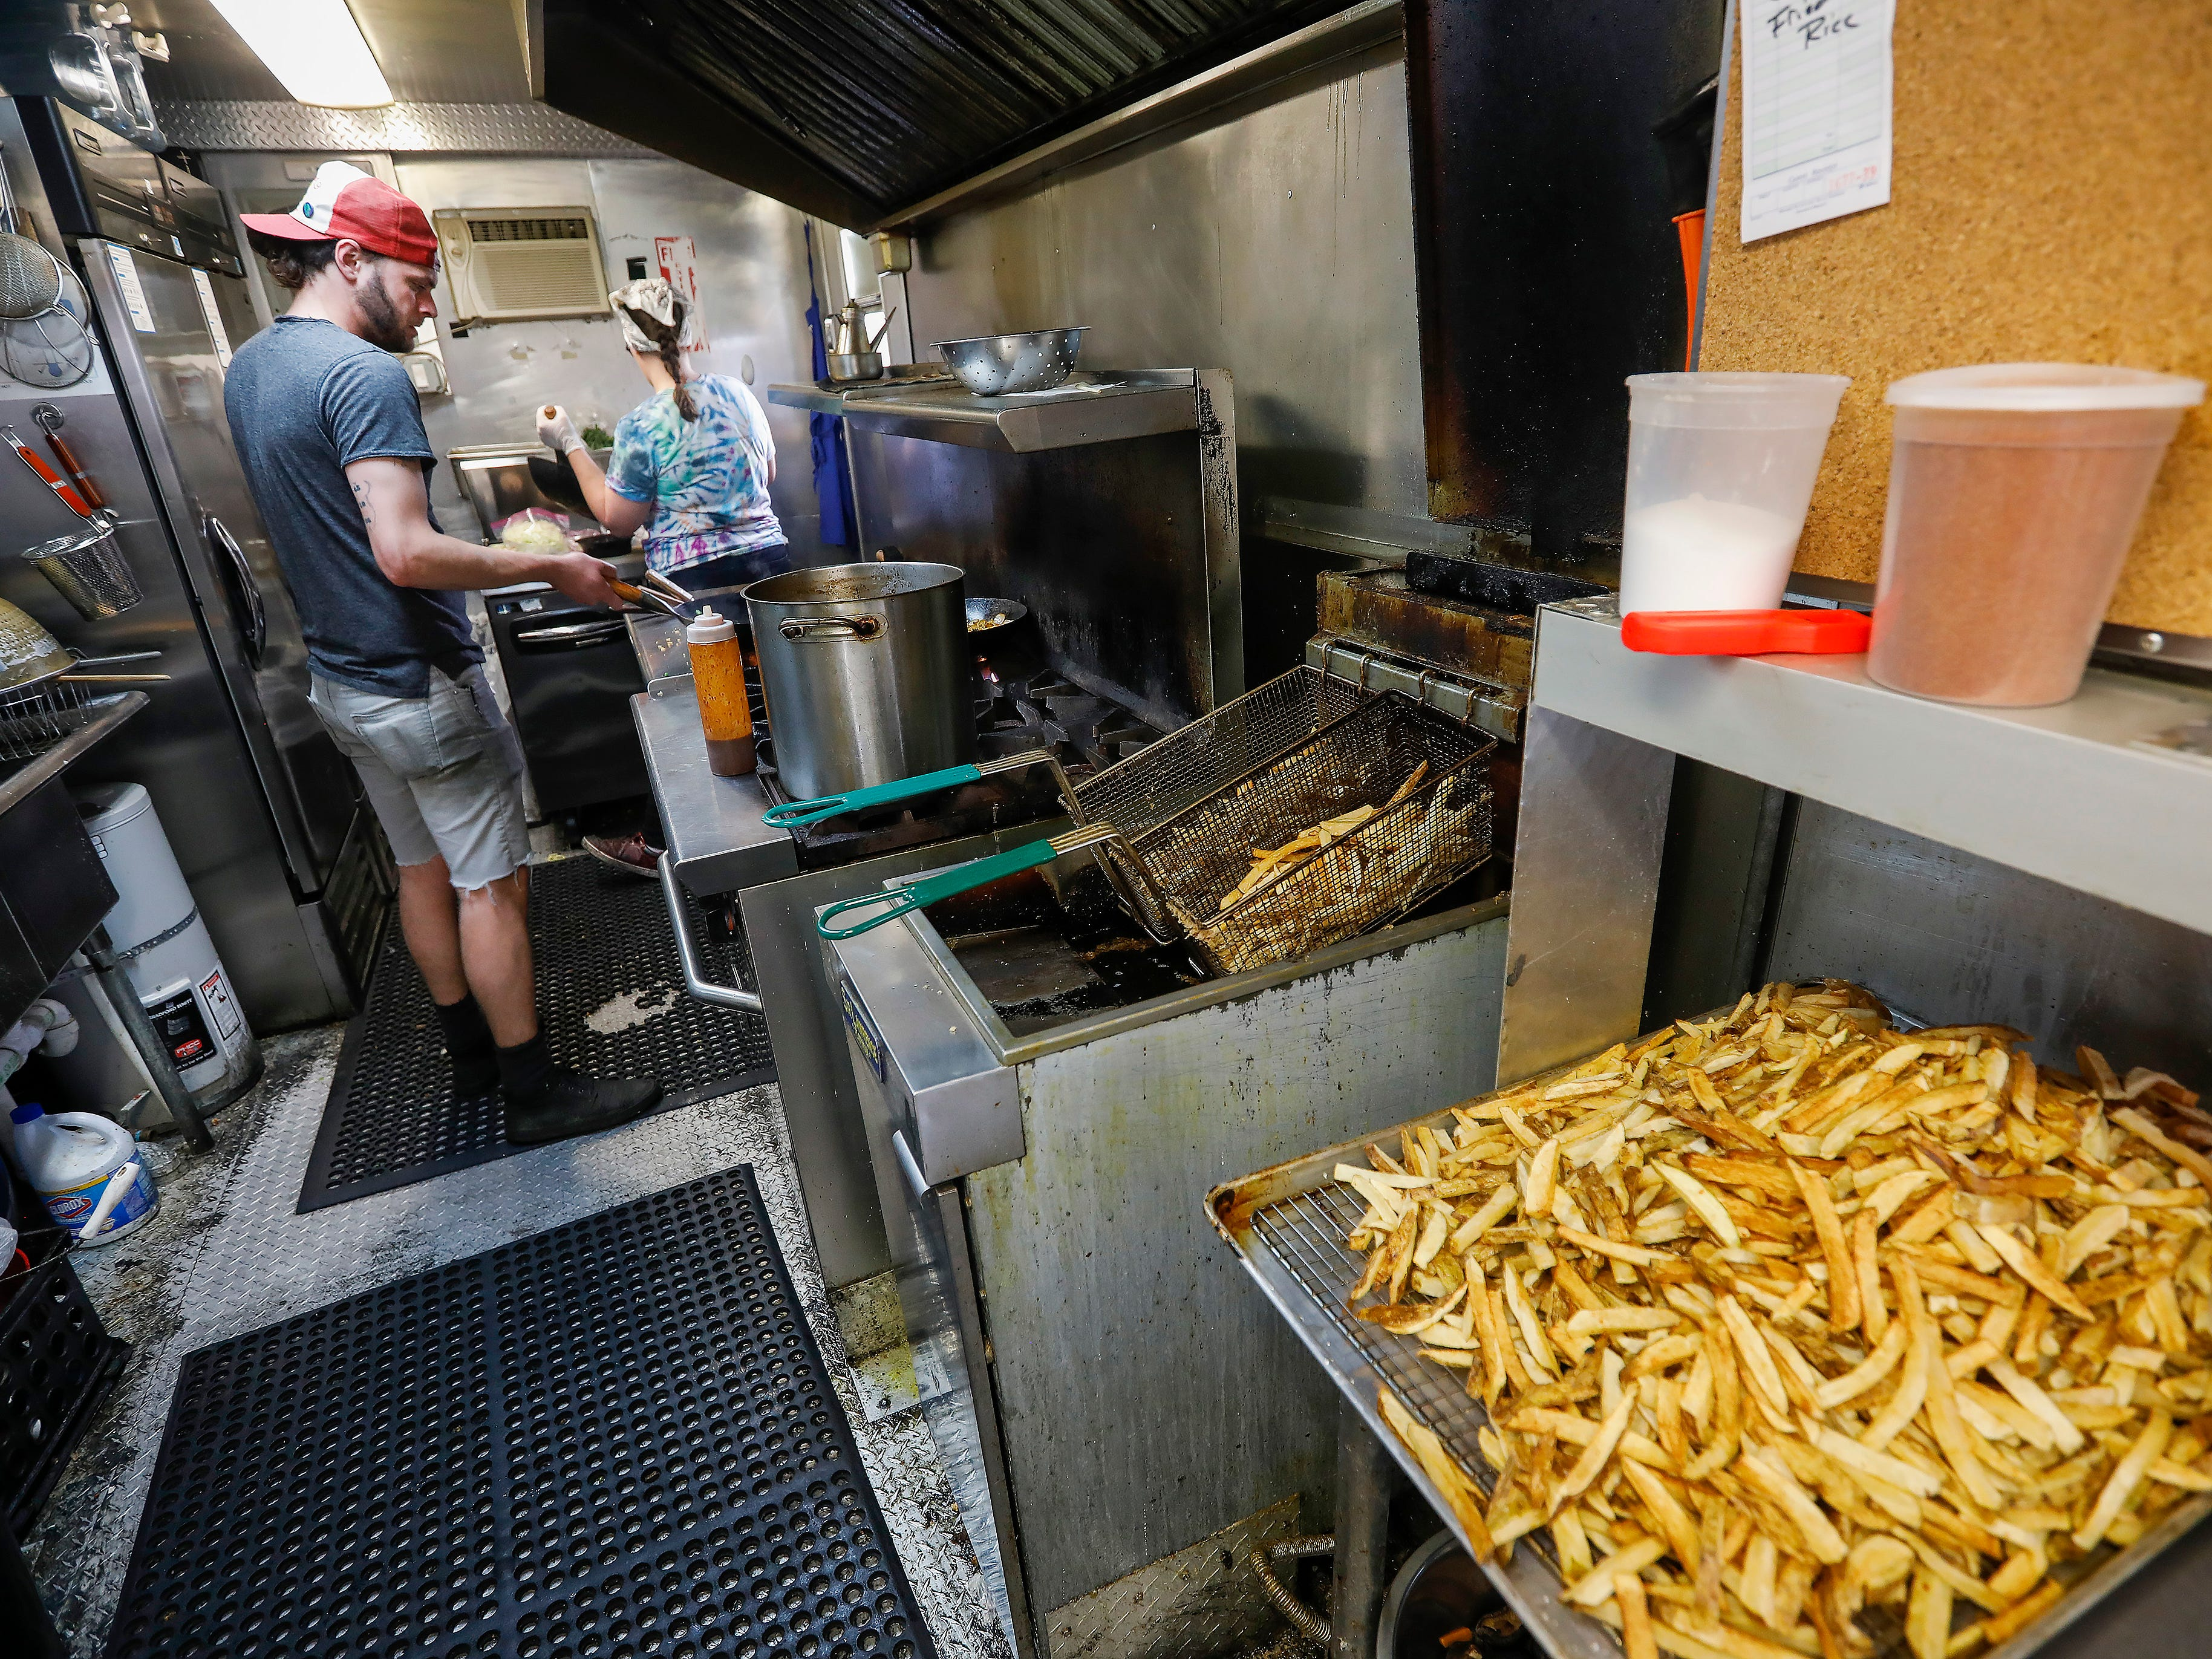 Joe and Lora Still work in the kitchen of Skully's Food Truck at the corner of Cherry Street and Pickwick Avenue on Wednesday, May 1, 2019. Skully's will be moving inside into the former Josh Mitchell Art Gallery building.